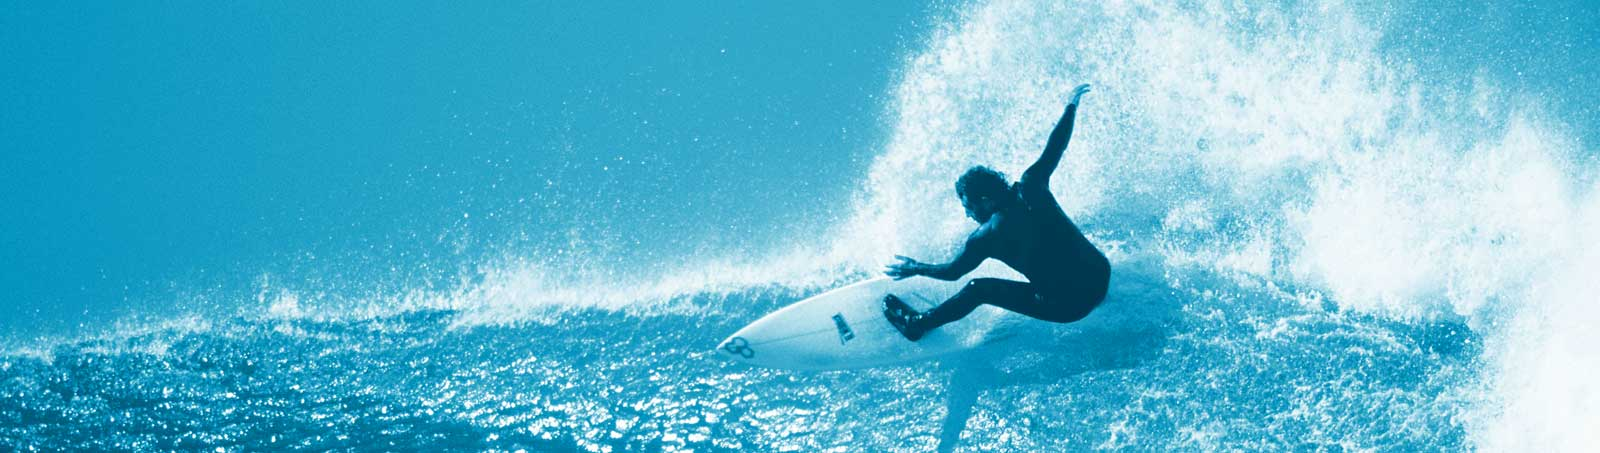 Shaun Tomson Surfing Photos Page Header